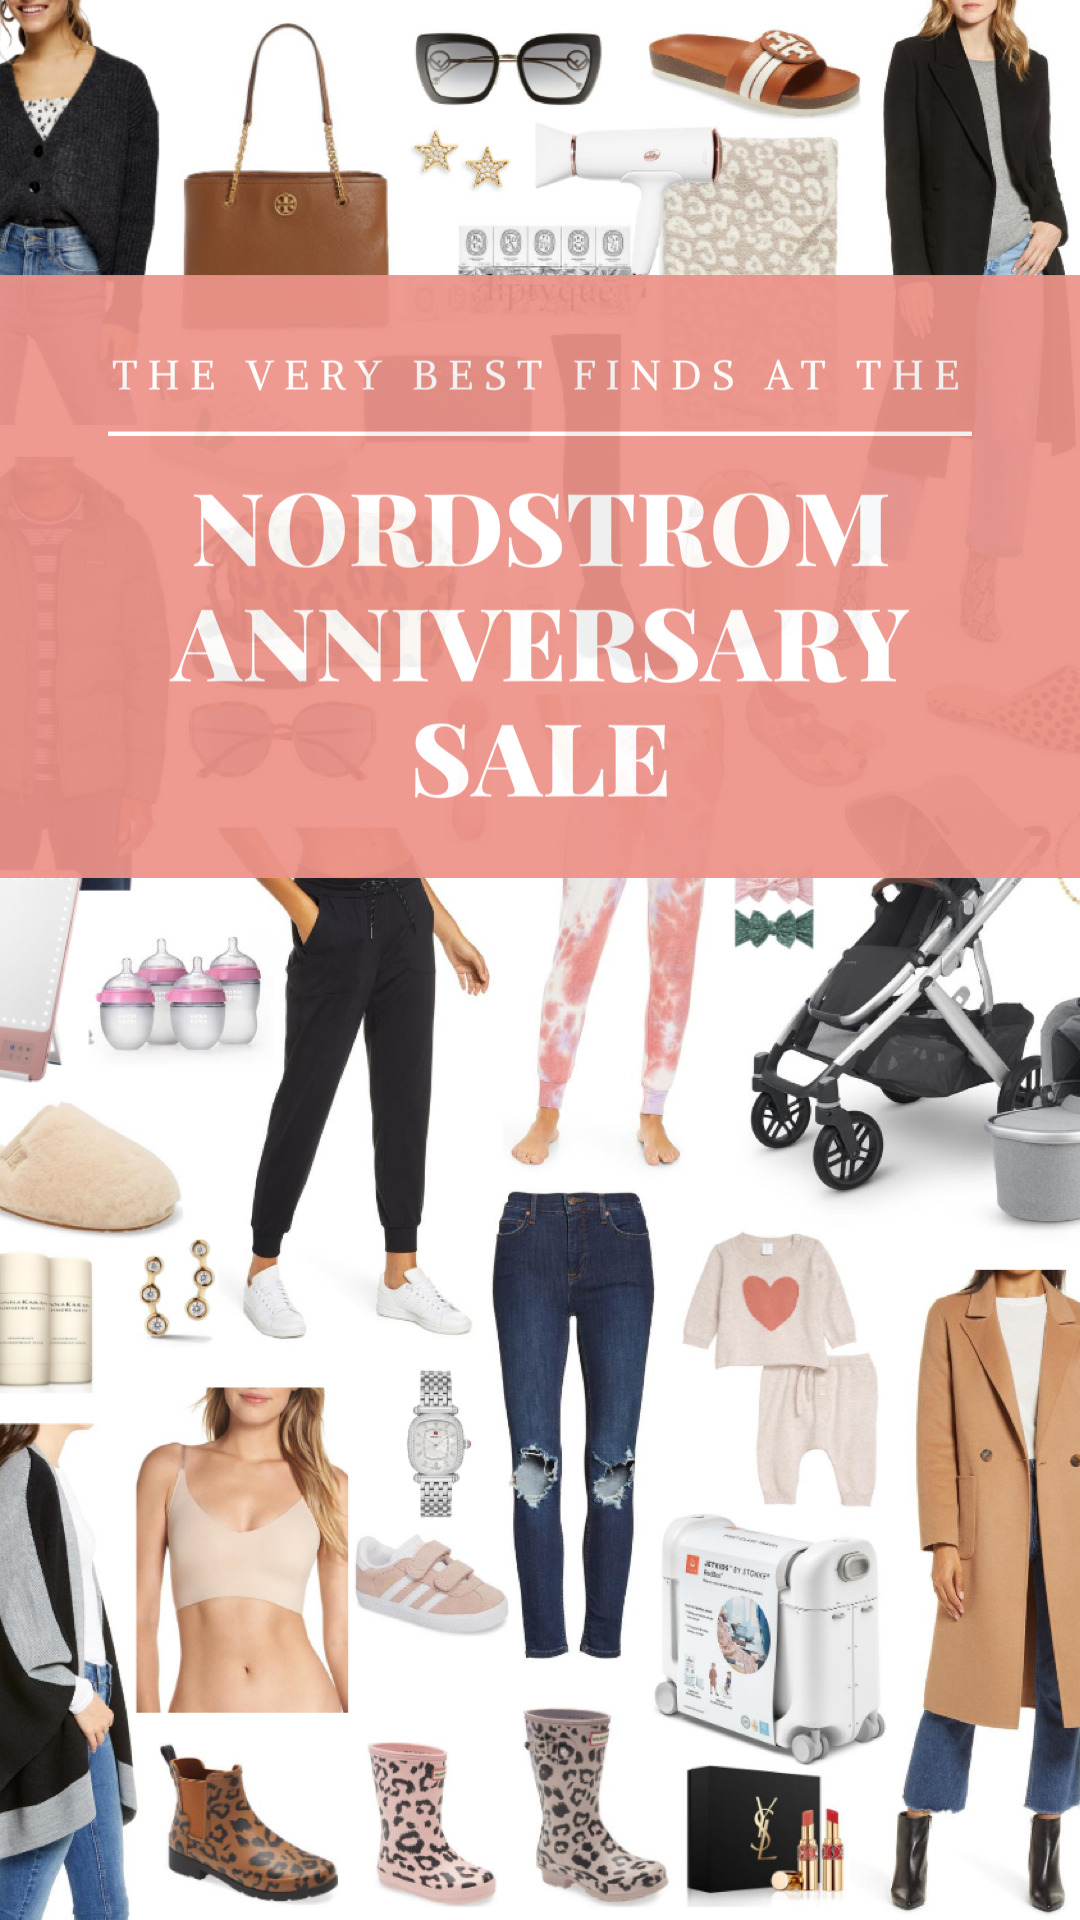 2020 Nordstrom Anniversary Sale Favorites and Best Buys for the Whole Family - GLITTERINC.COM